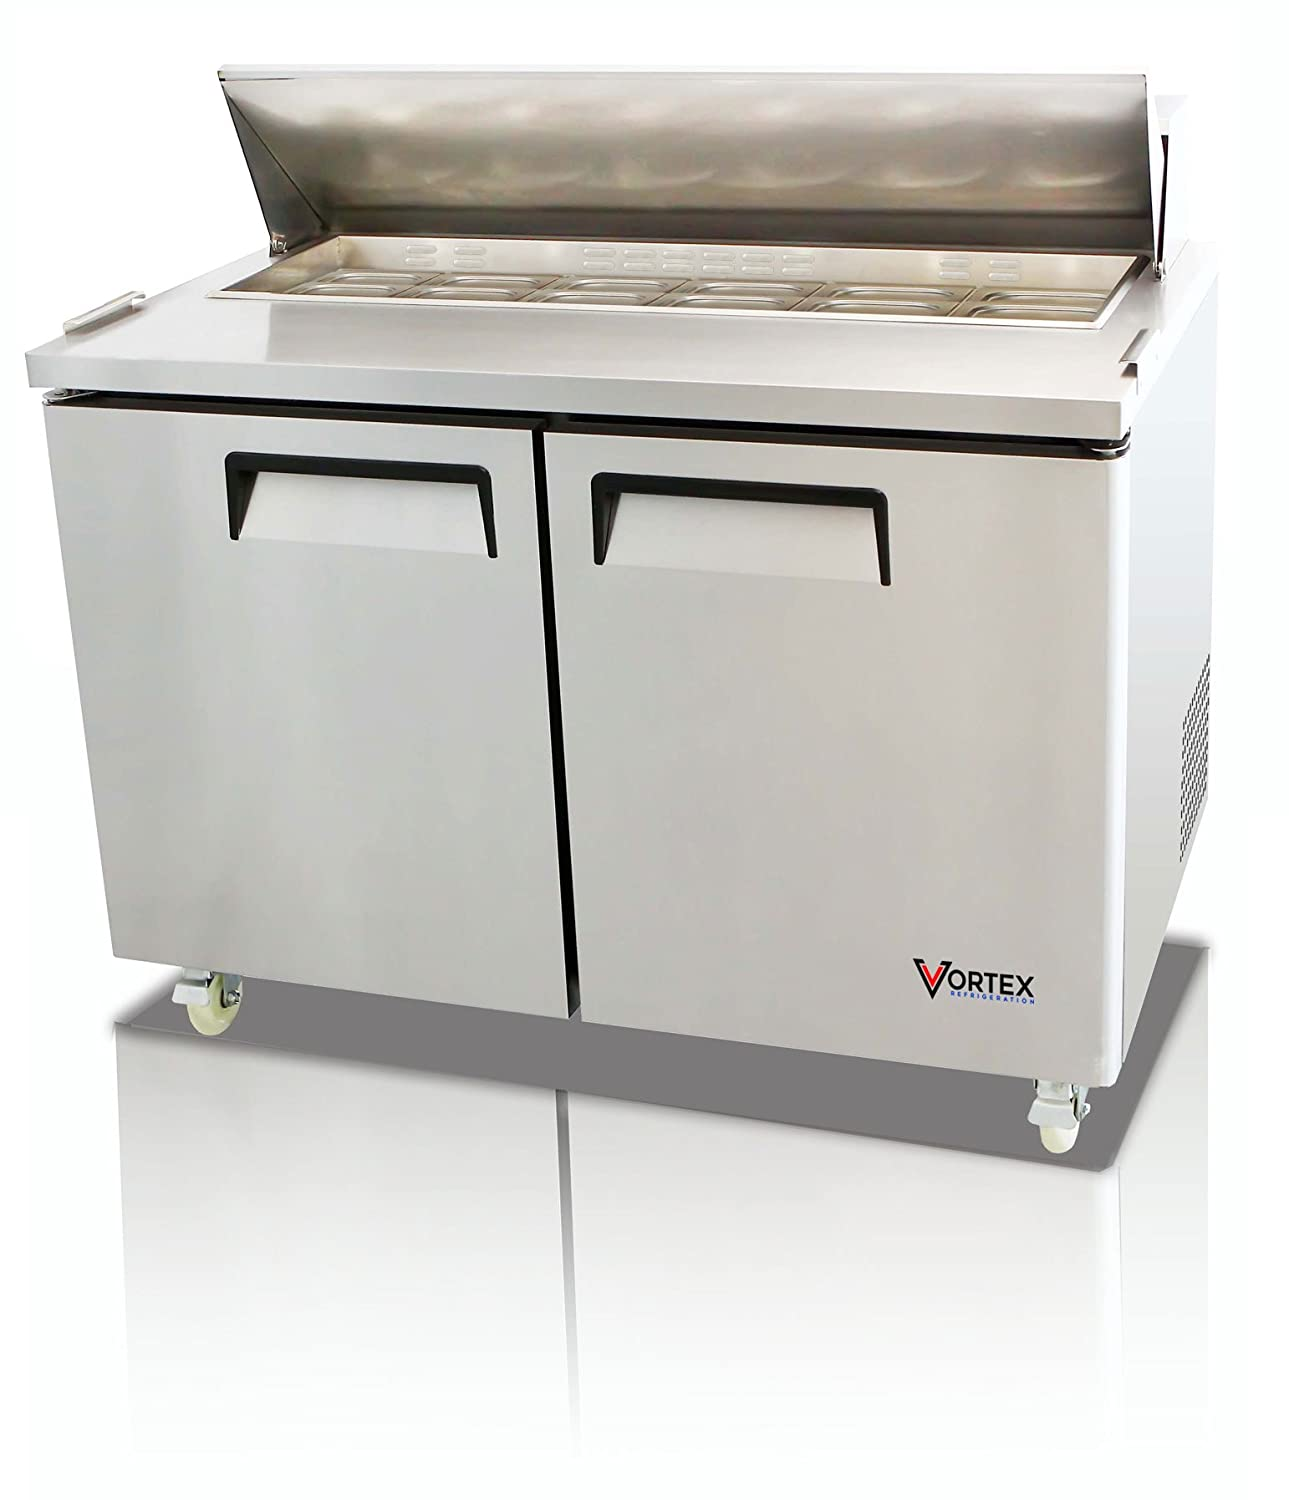 "Vortex Refrigeration Commercial 2 Door 48"", 12 Pan Sandwich Prep Table - 12.5 Cu. Ft."